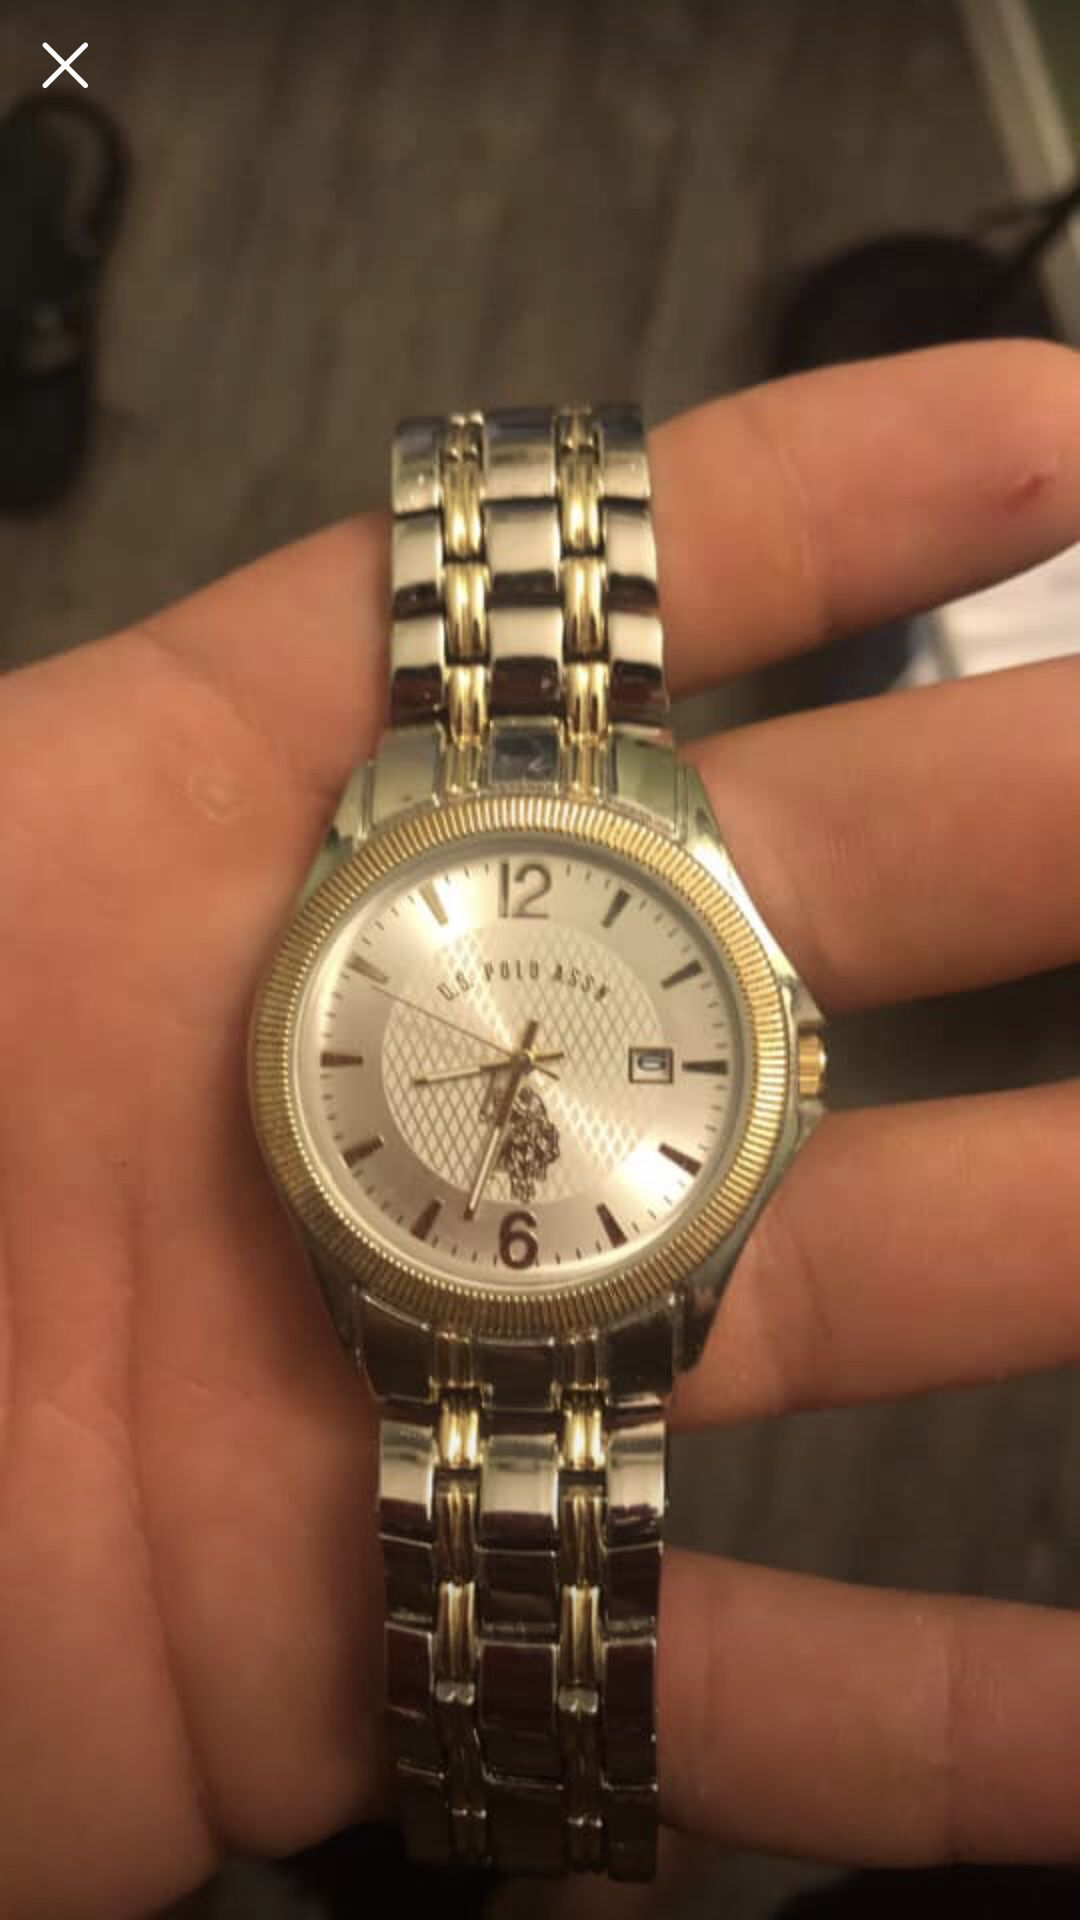 U.S Polo Assn Watch! Never been used brand new!